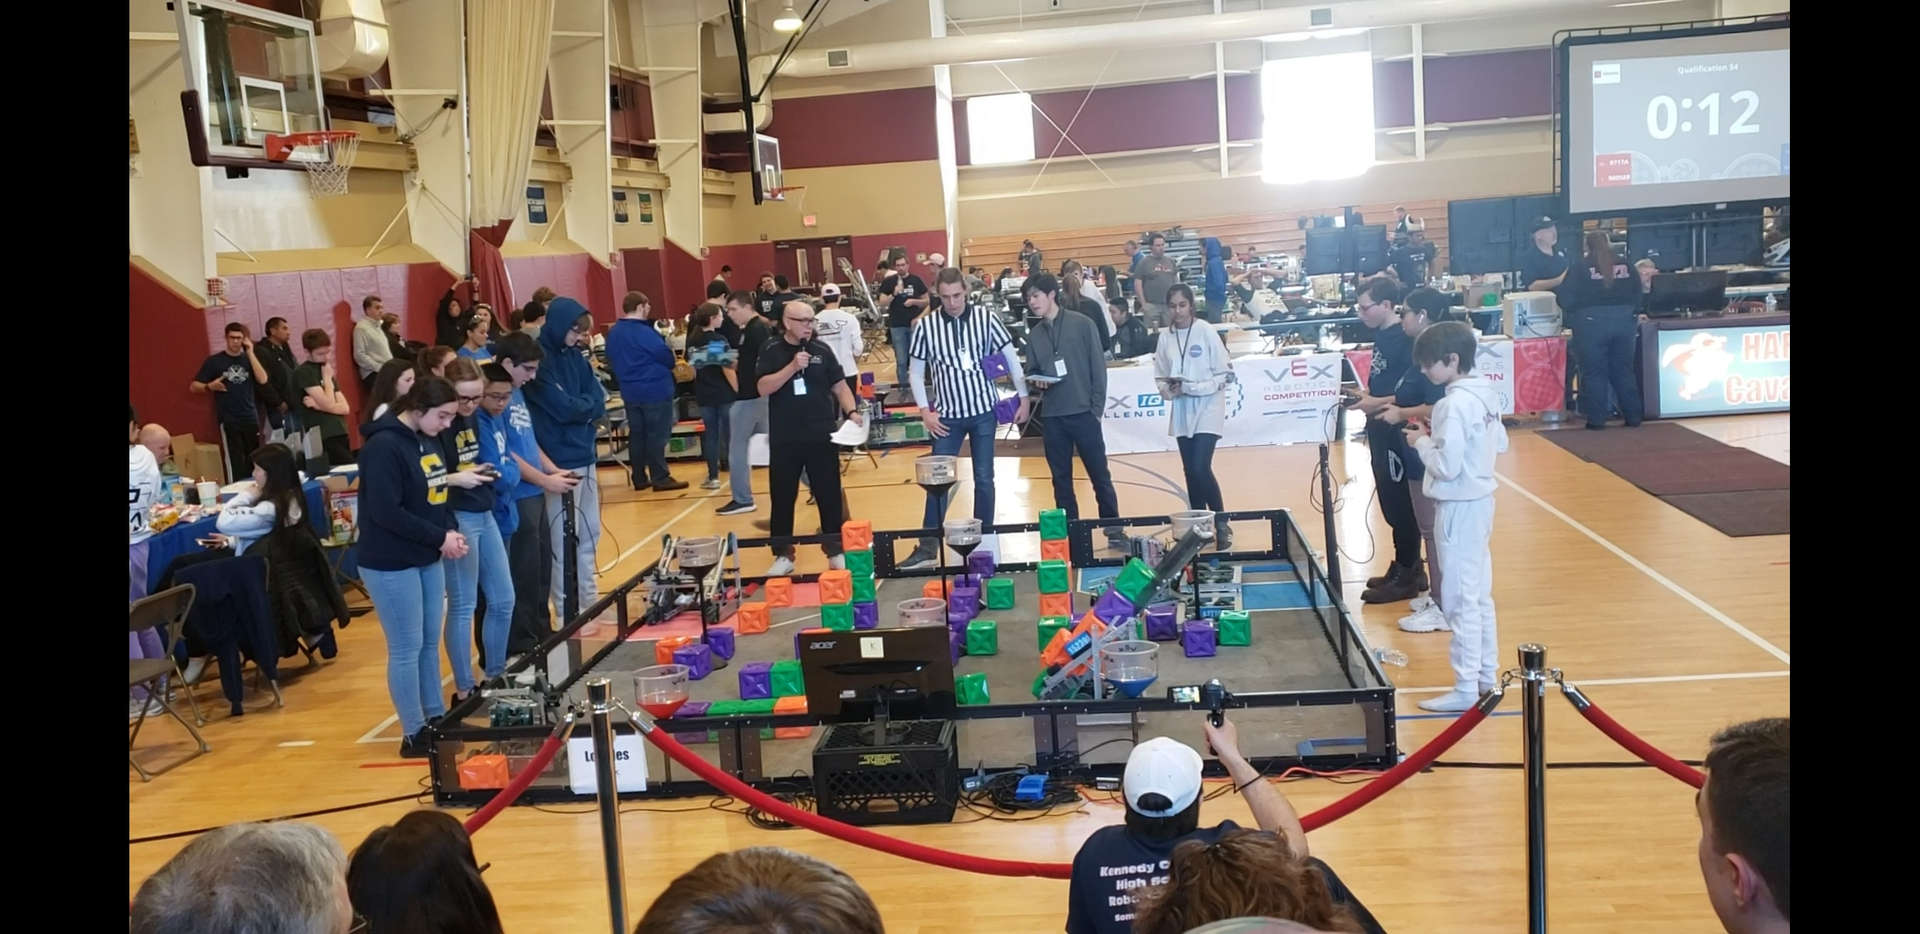 PRHS Robotics Competition